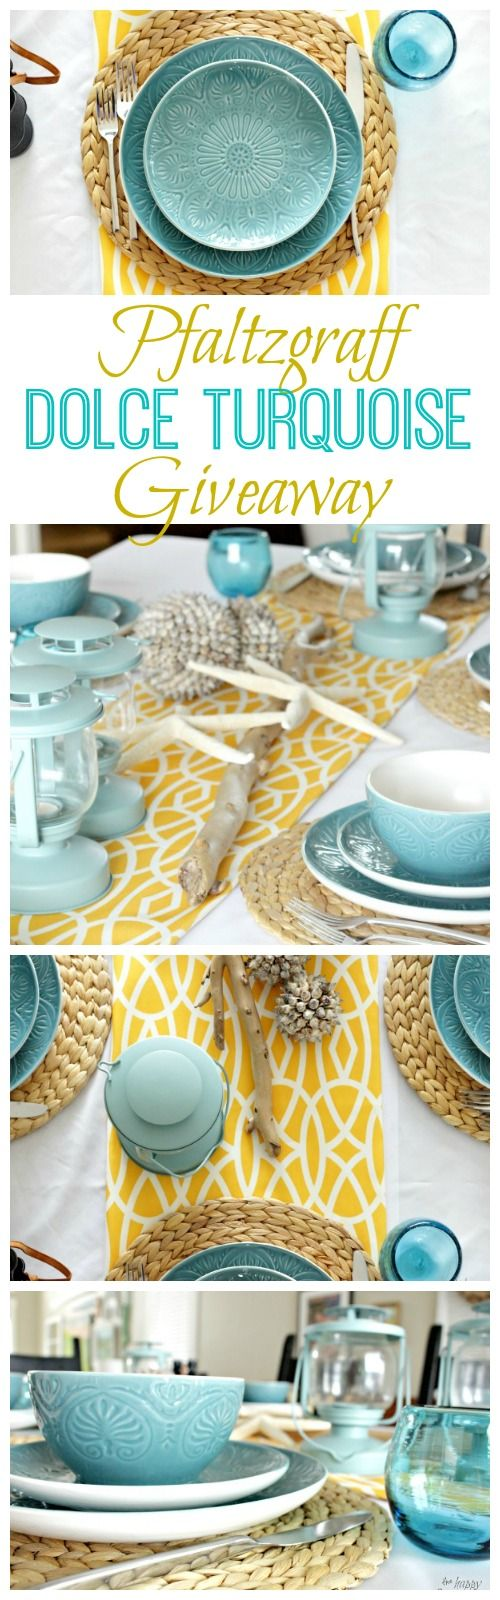 Best 25+ Yellow turquoise ideas on Pinterest | Lemon yellow ...